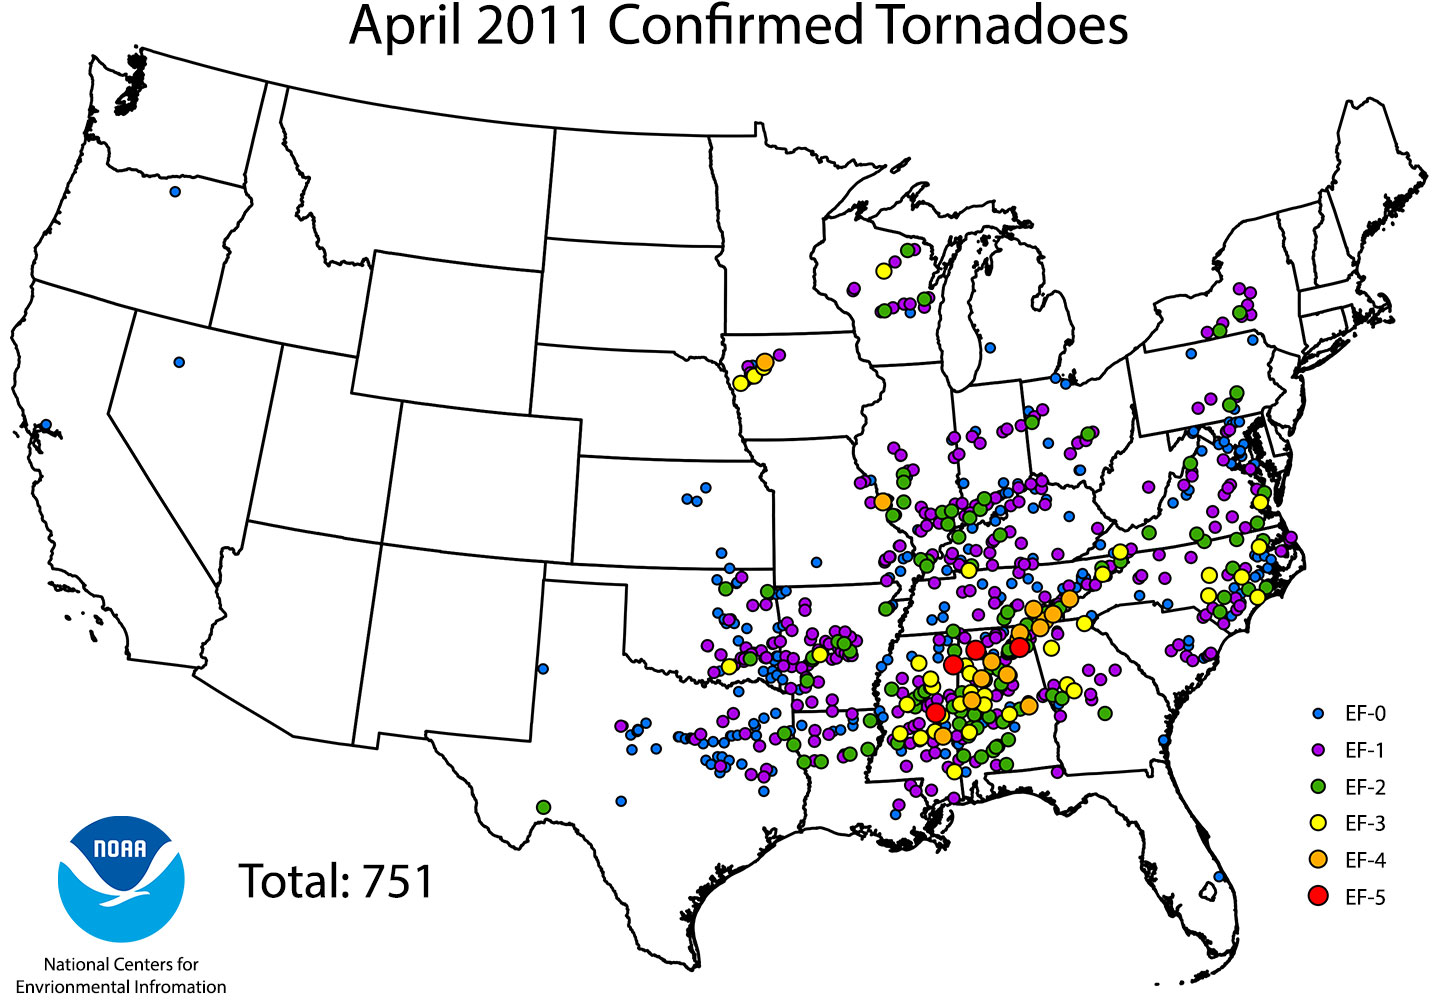 Map of 751 confirmed tornadoes in April 2011